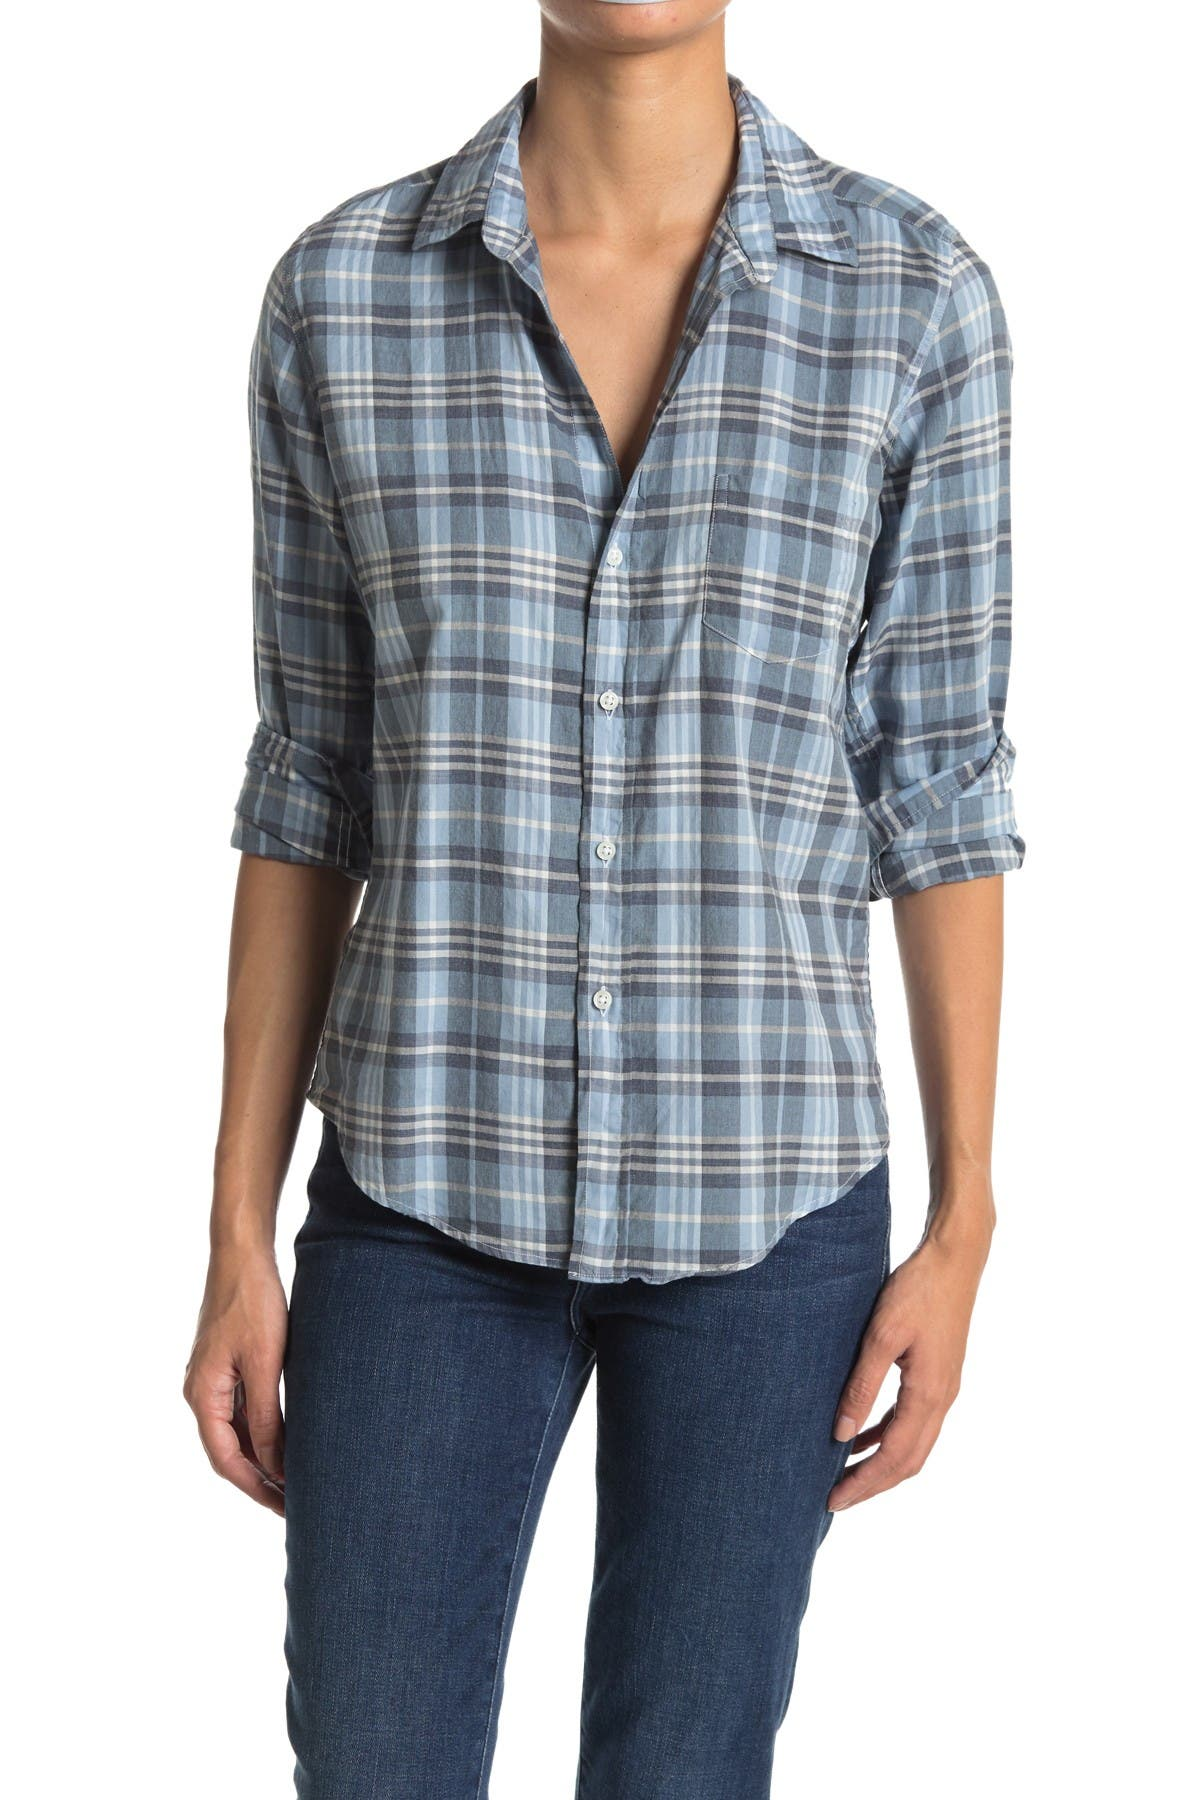 Image of FRANK & EILEEN Barry Fit Plaid Shirt